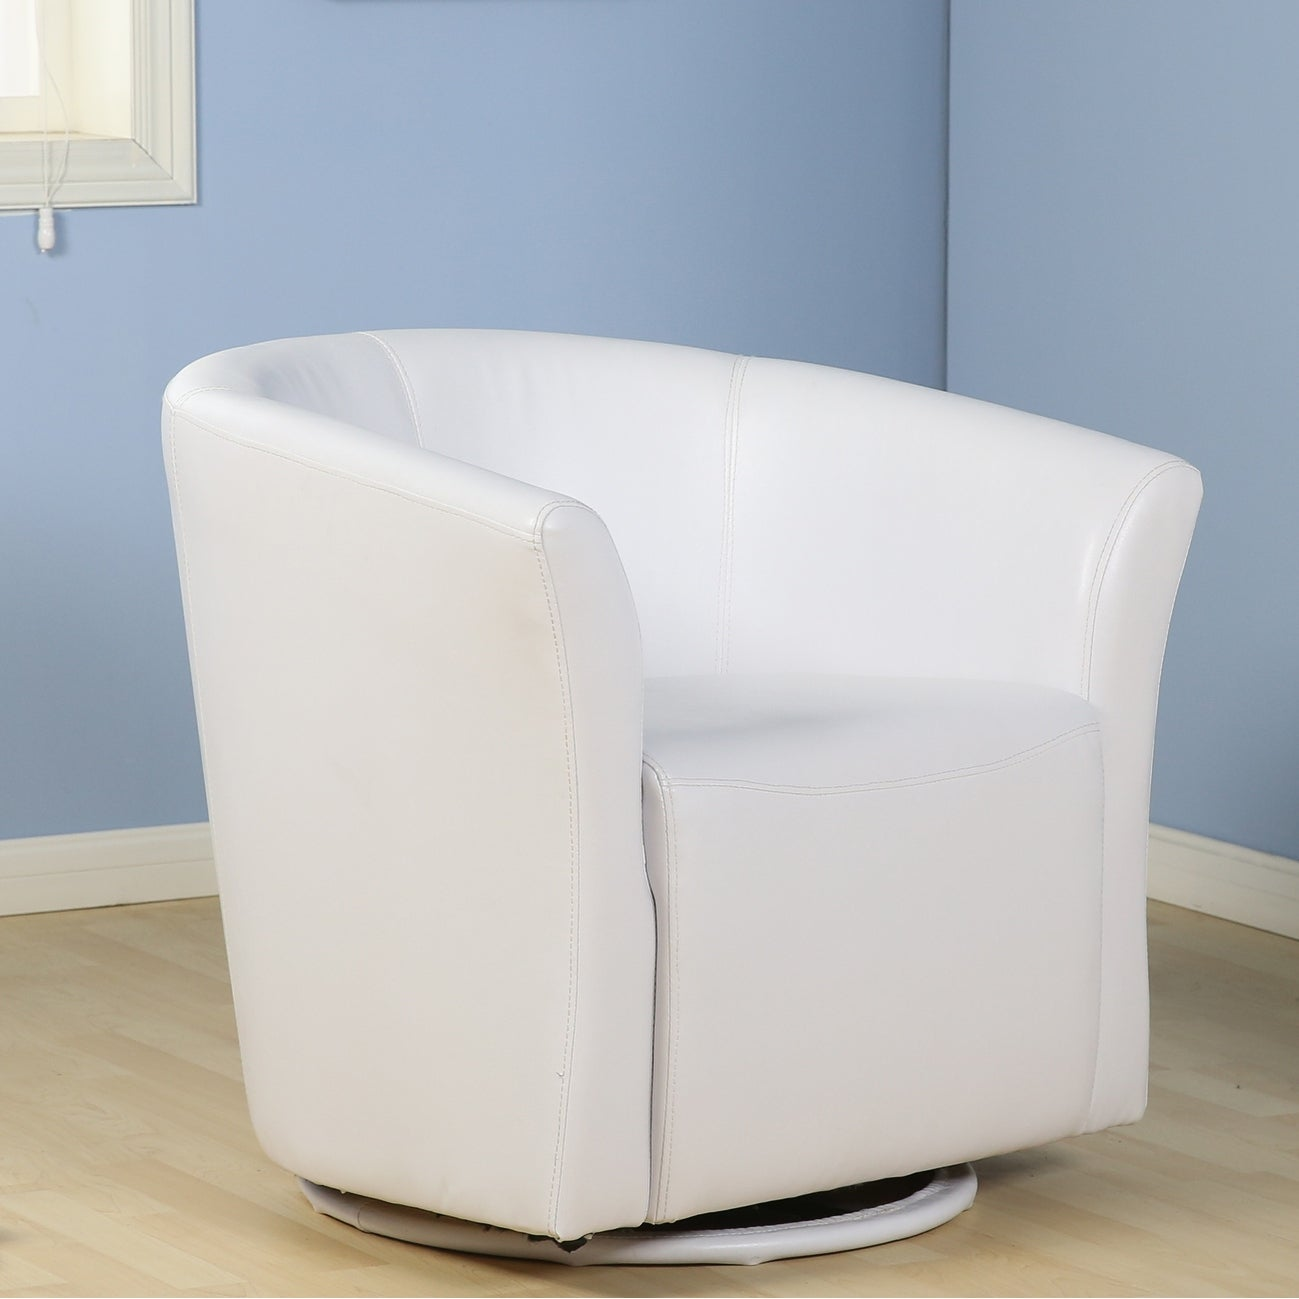 Belleze faux leather club tub barrel modern accent chair with arm rest and 360 degree swivel base white